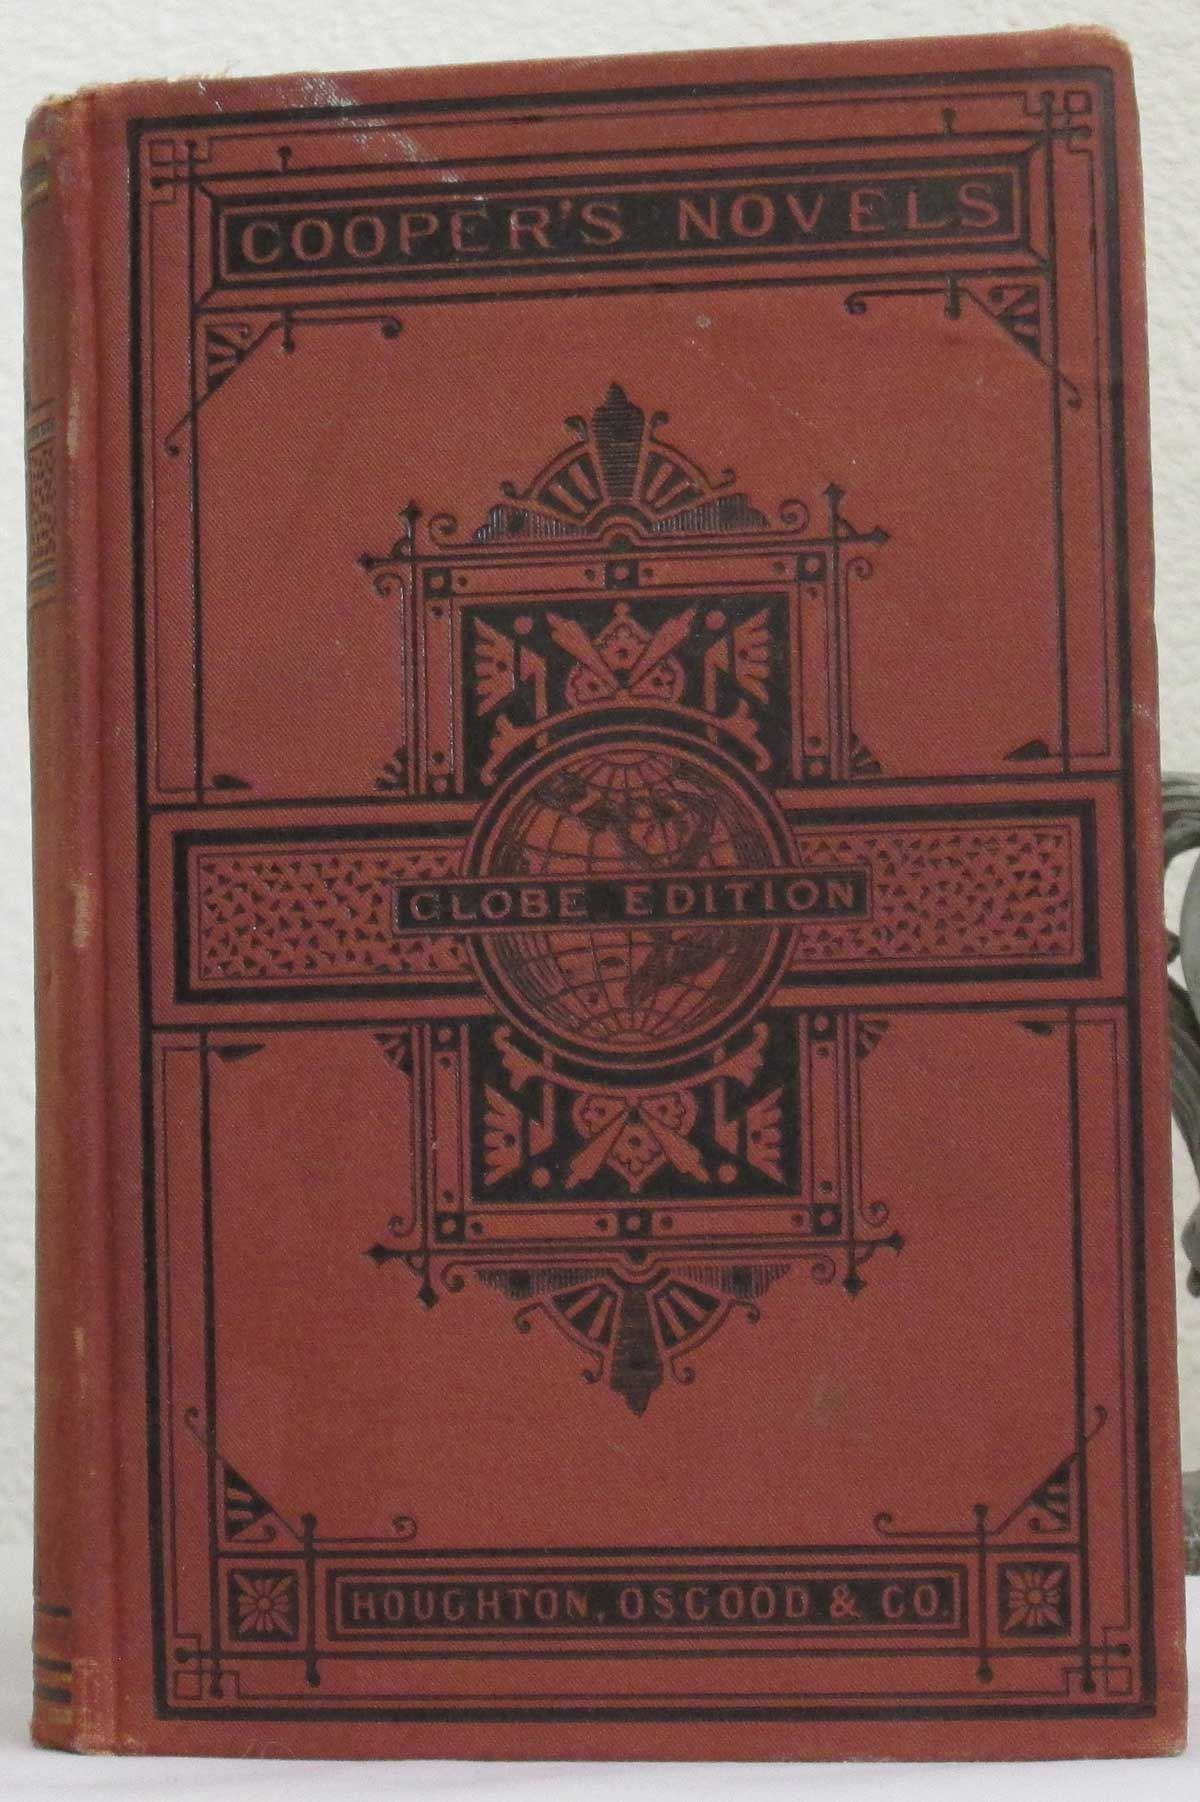 #jamesfenimorecooper #book #antique #antiquebook #vintage #vintagebook #red